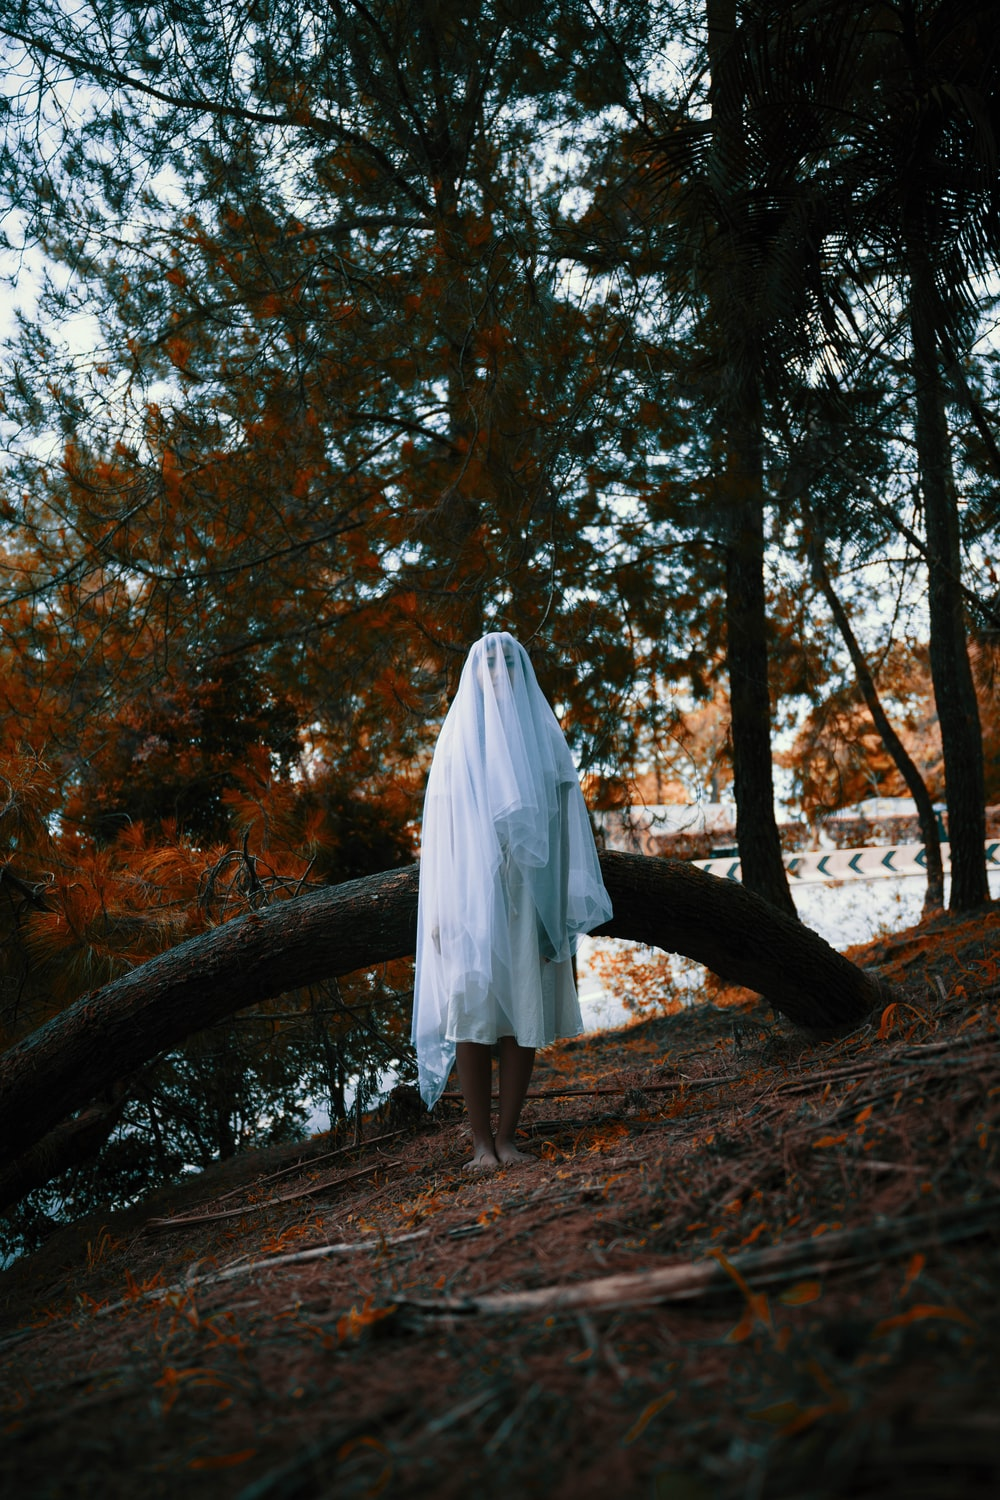 woman in white dress standing on brown tree trunk during daytime